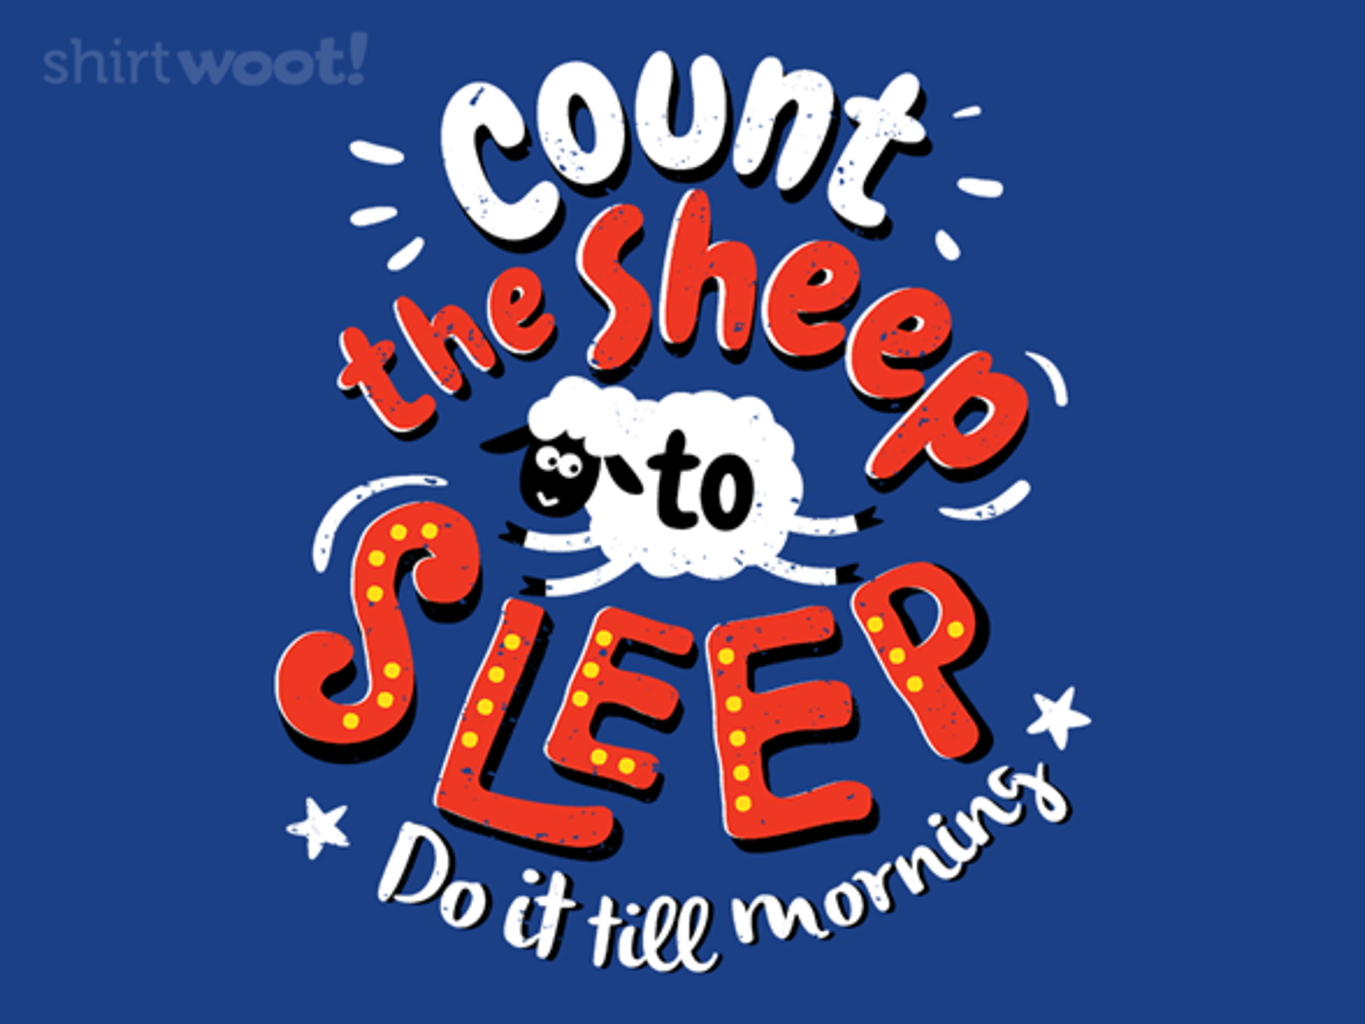 Woot!: Count the Sheep